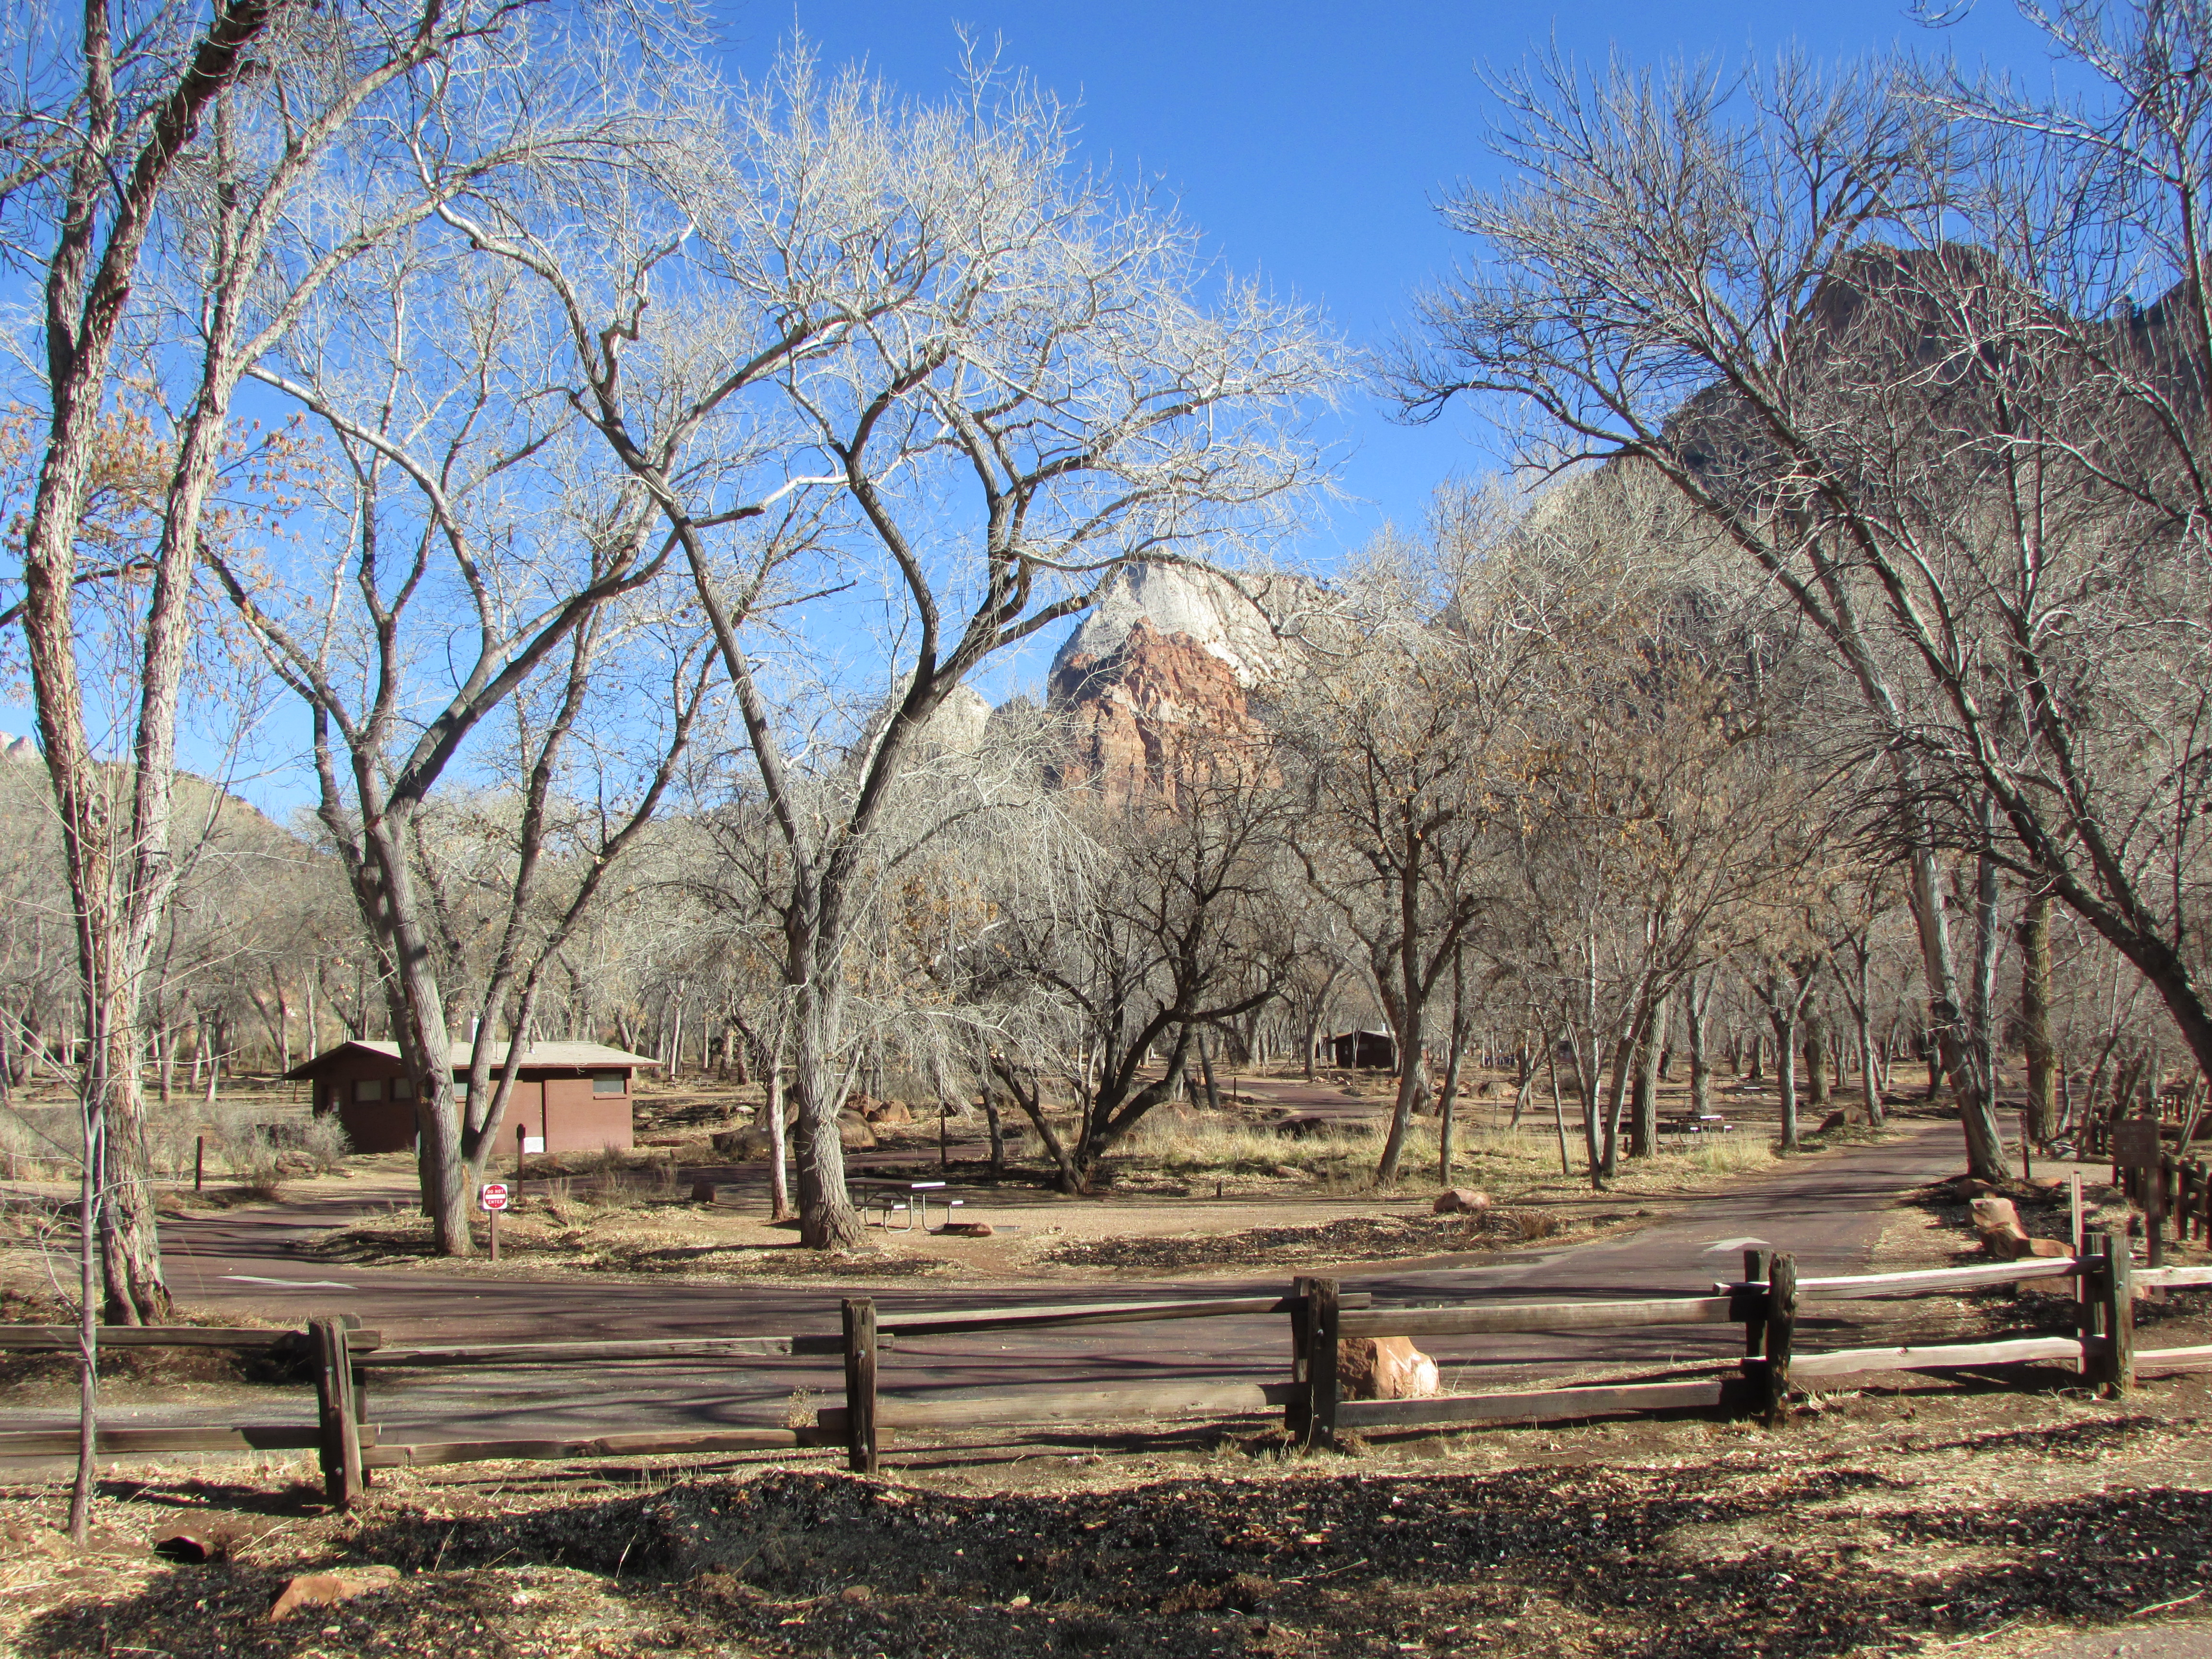 It's a good time to visit Zion National Park — if you're OK with not having access to many visitor services because of the government shutdown